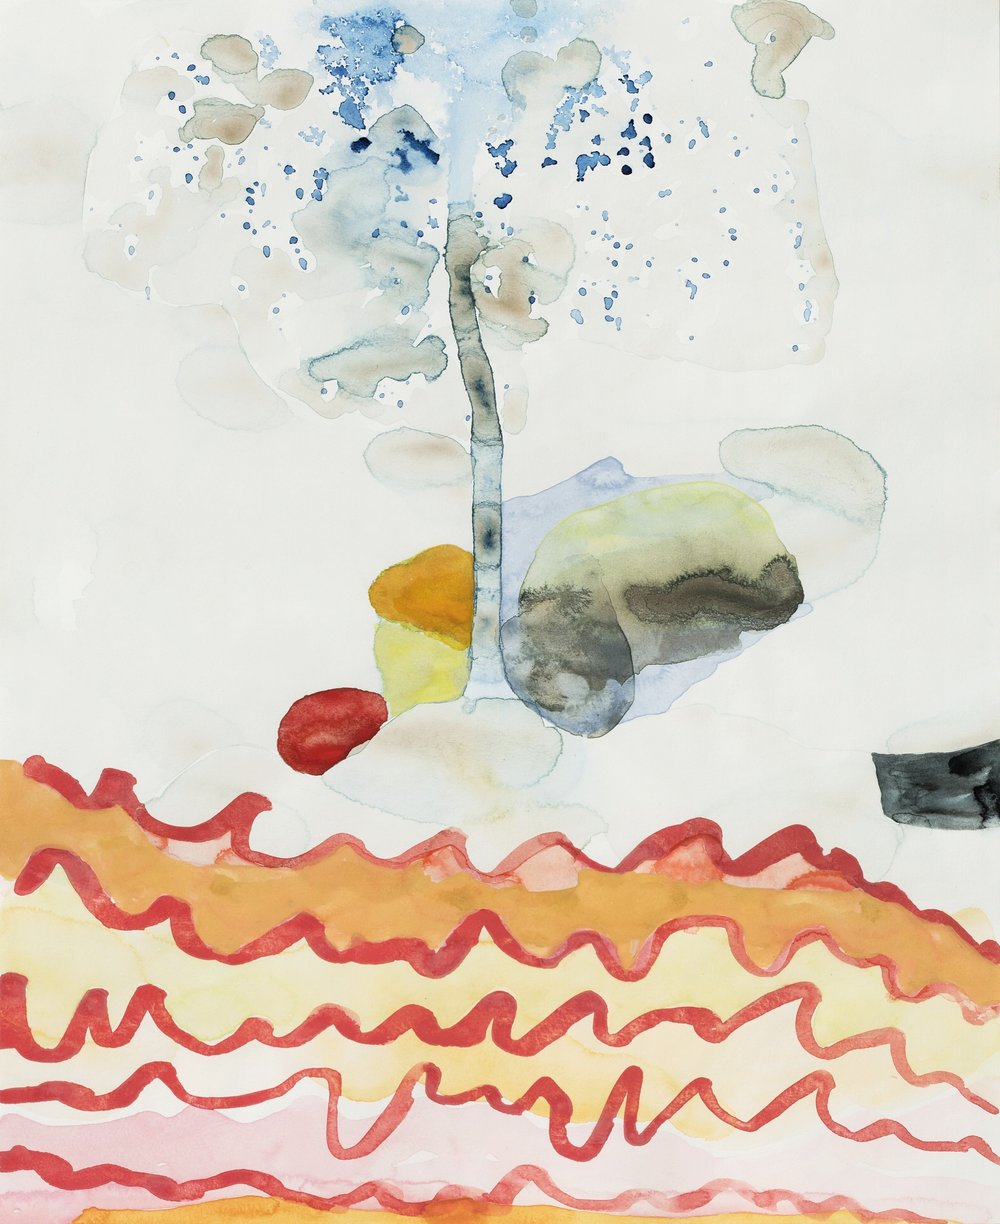 "With Many Turns and Windings 12,  2013  Watercolor and sumi ink on paper  17"" x 14"""